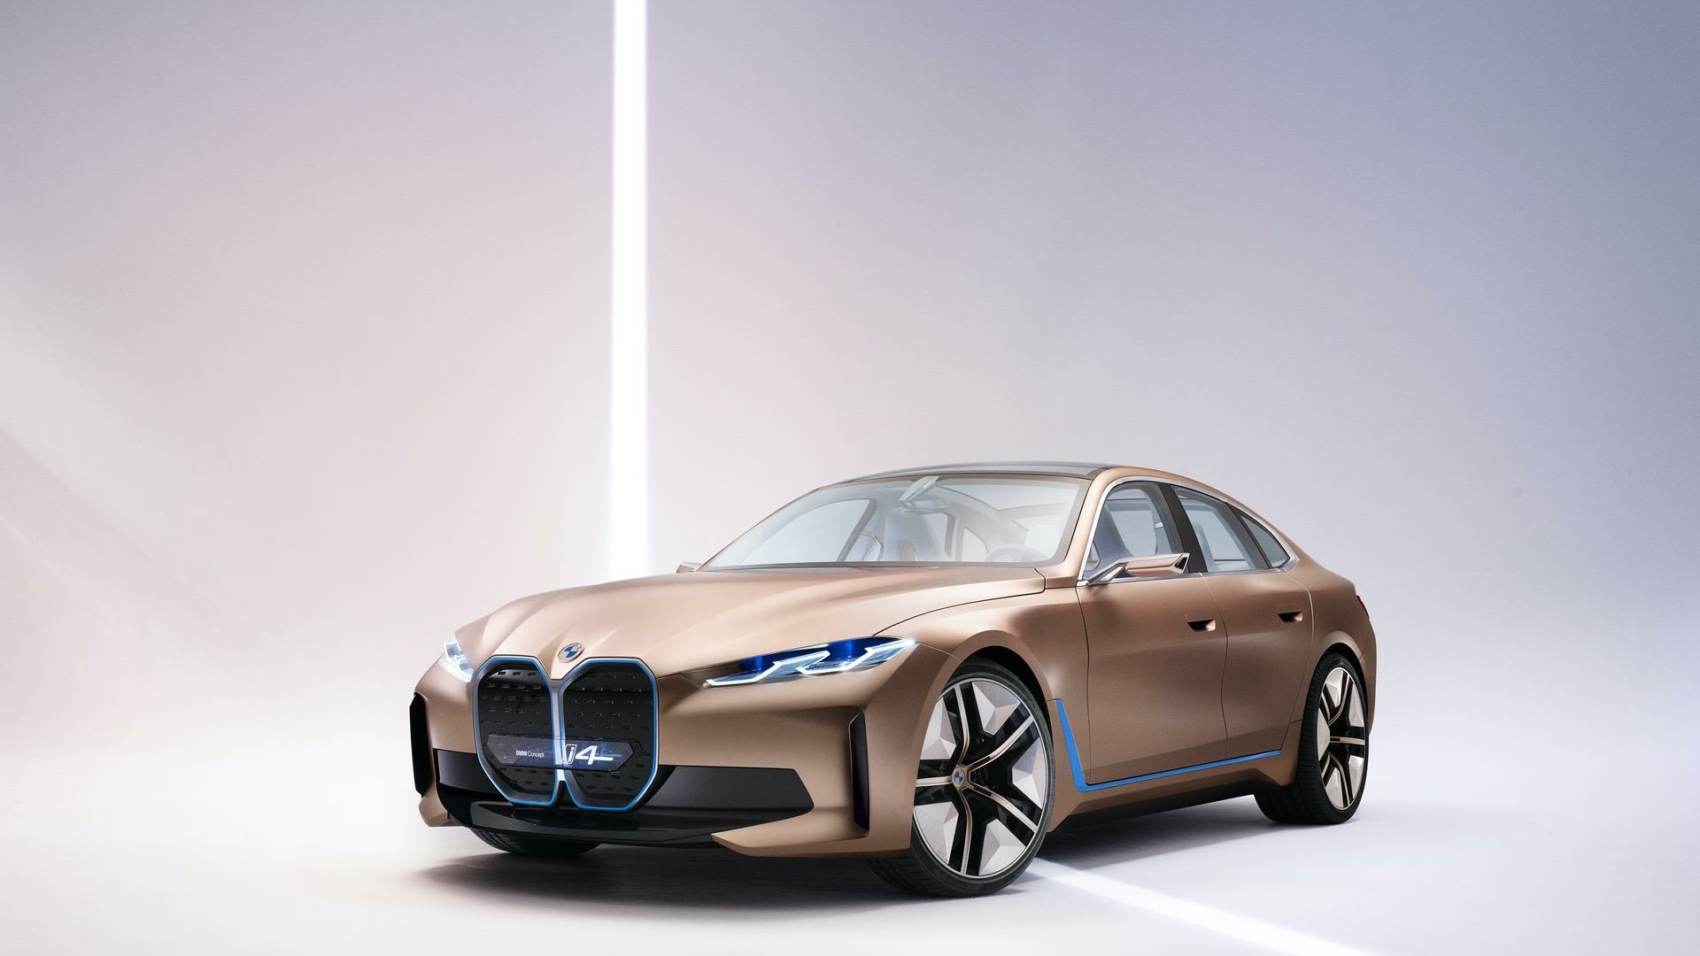 BMW-Concept-i4-images-studio-01